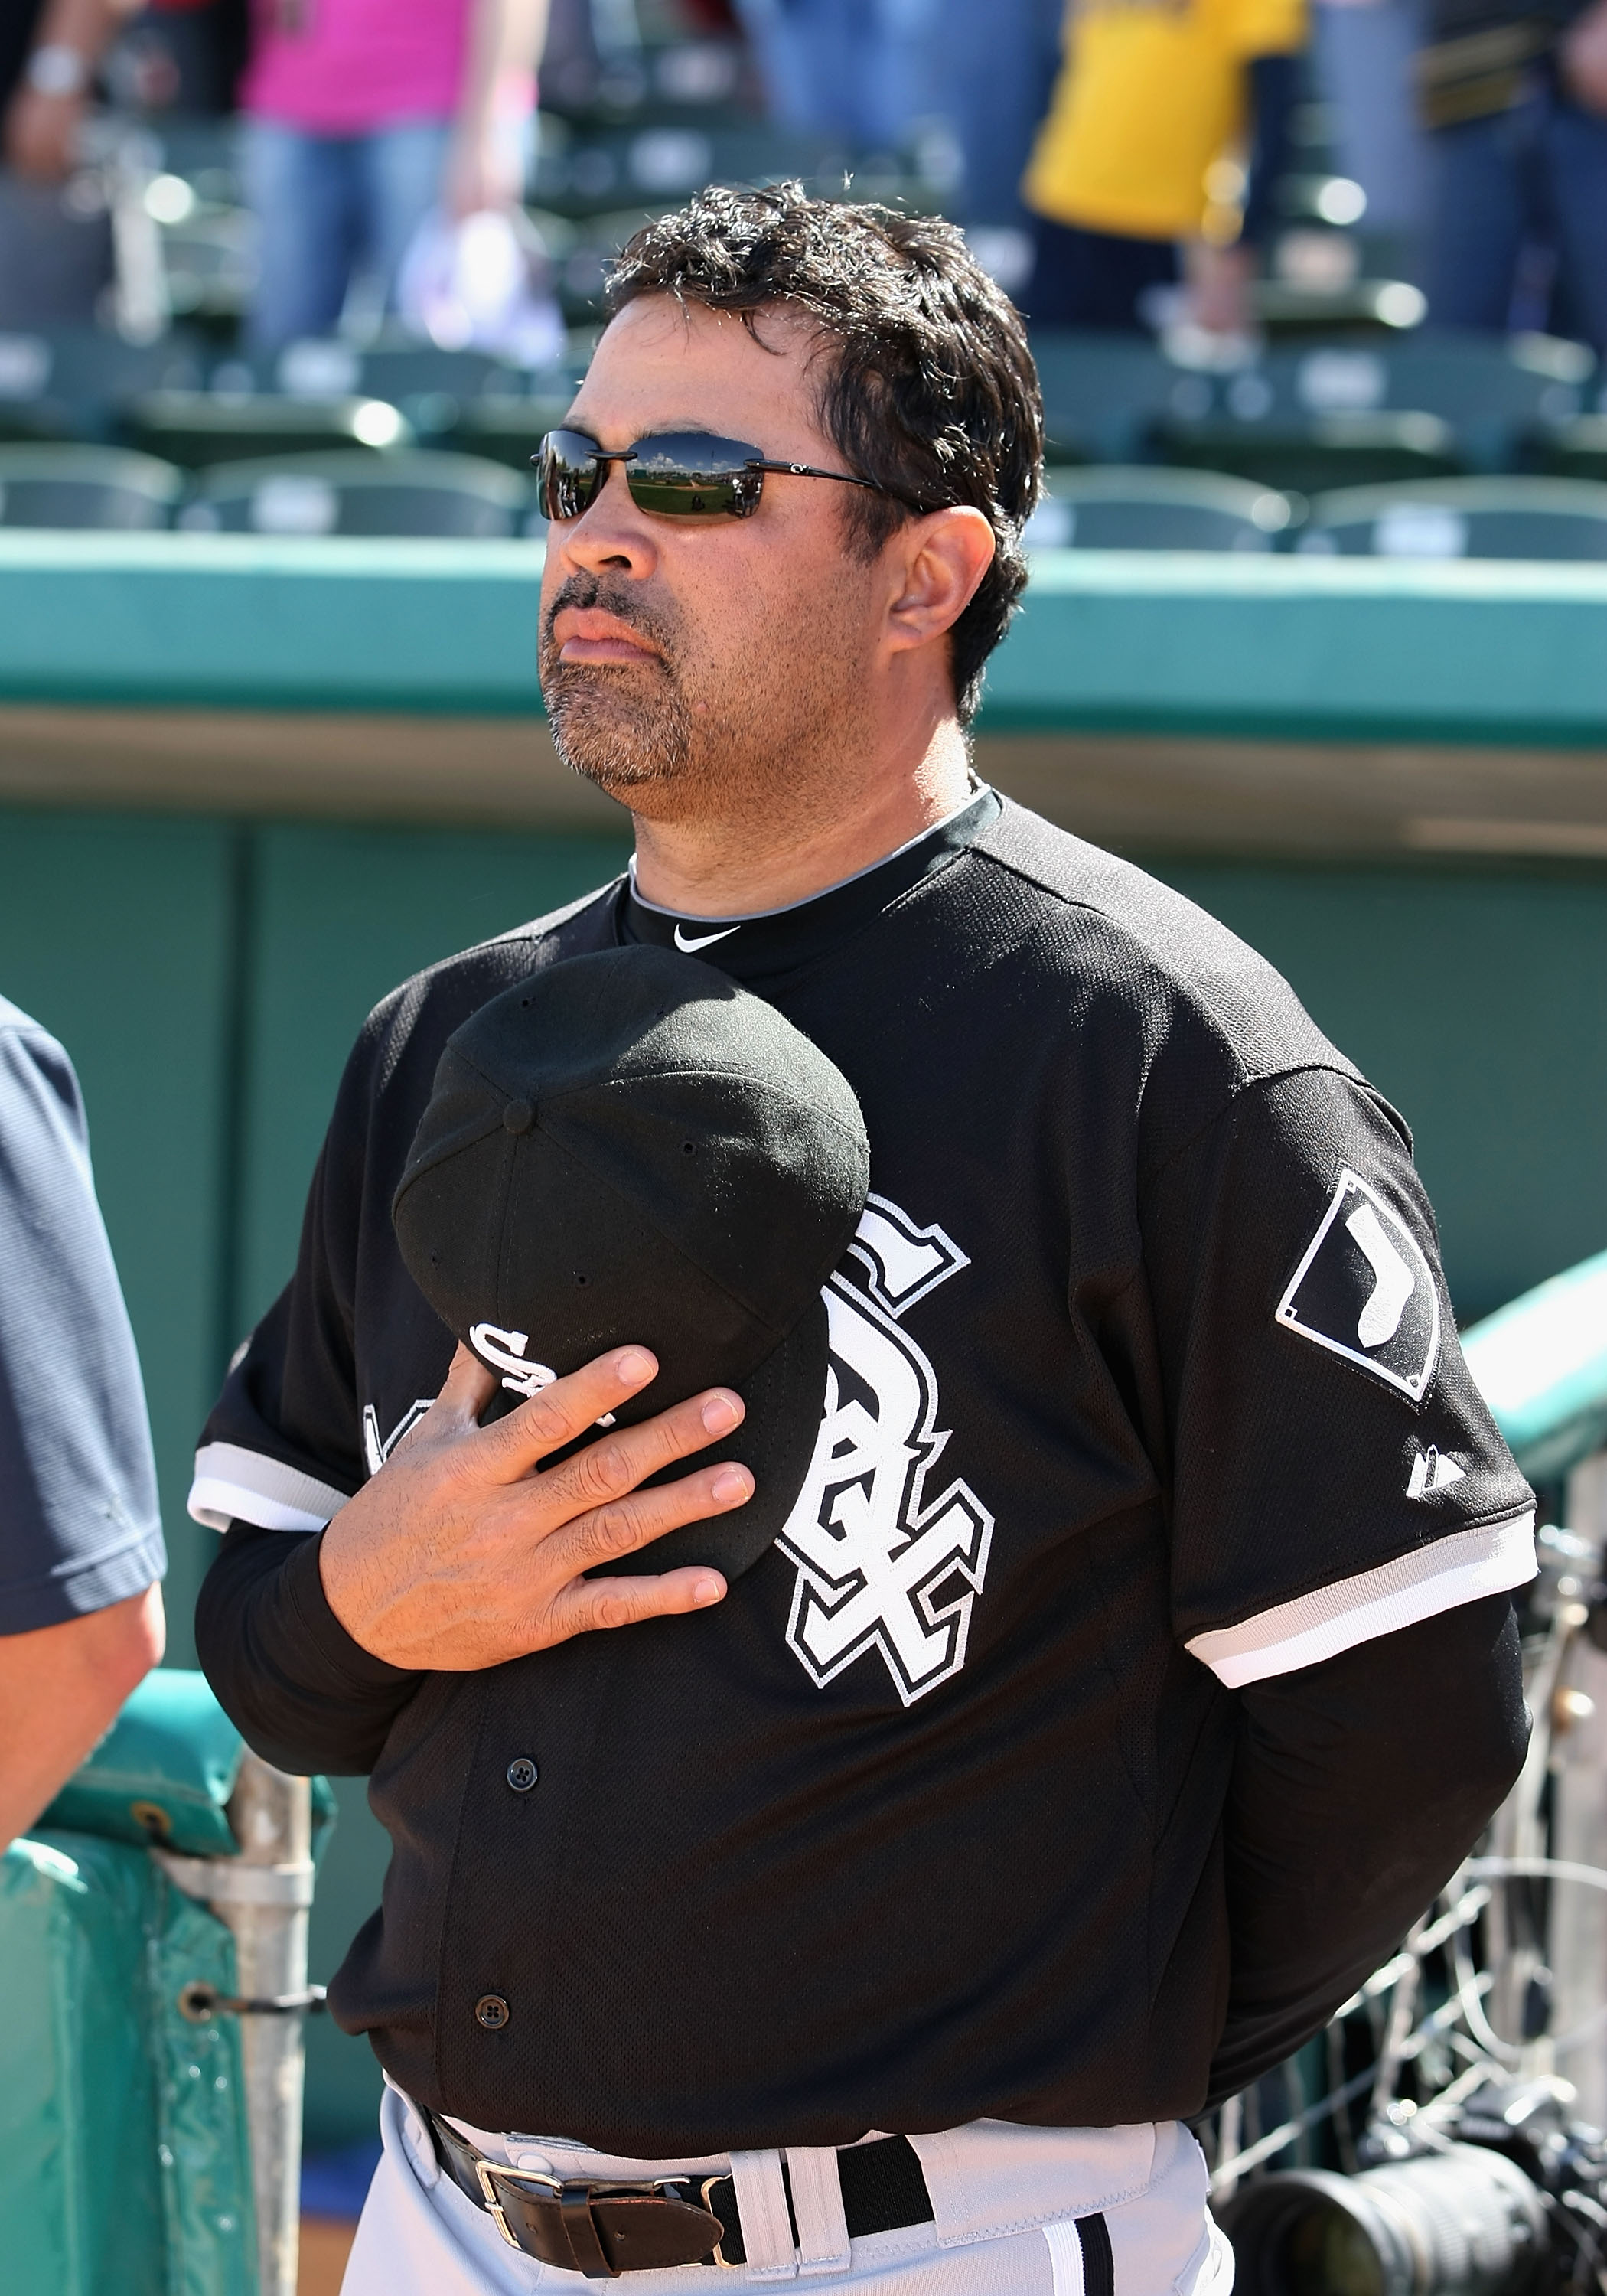 TUCSON, AZ - MARCH 07:  Manager Ozzie Guillen #13 of the Chicago White Sox during the spring training game against the Arizona Diamondbacks at Kino Veterans Memorial Stadium on March 7, 2011 in Tucson, Arizona.  (Photo by Christian Petersen/Getty Images)